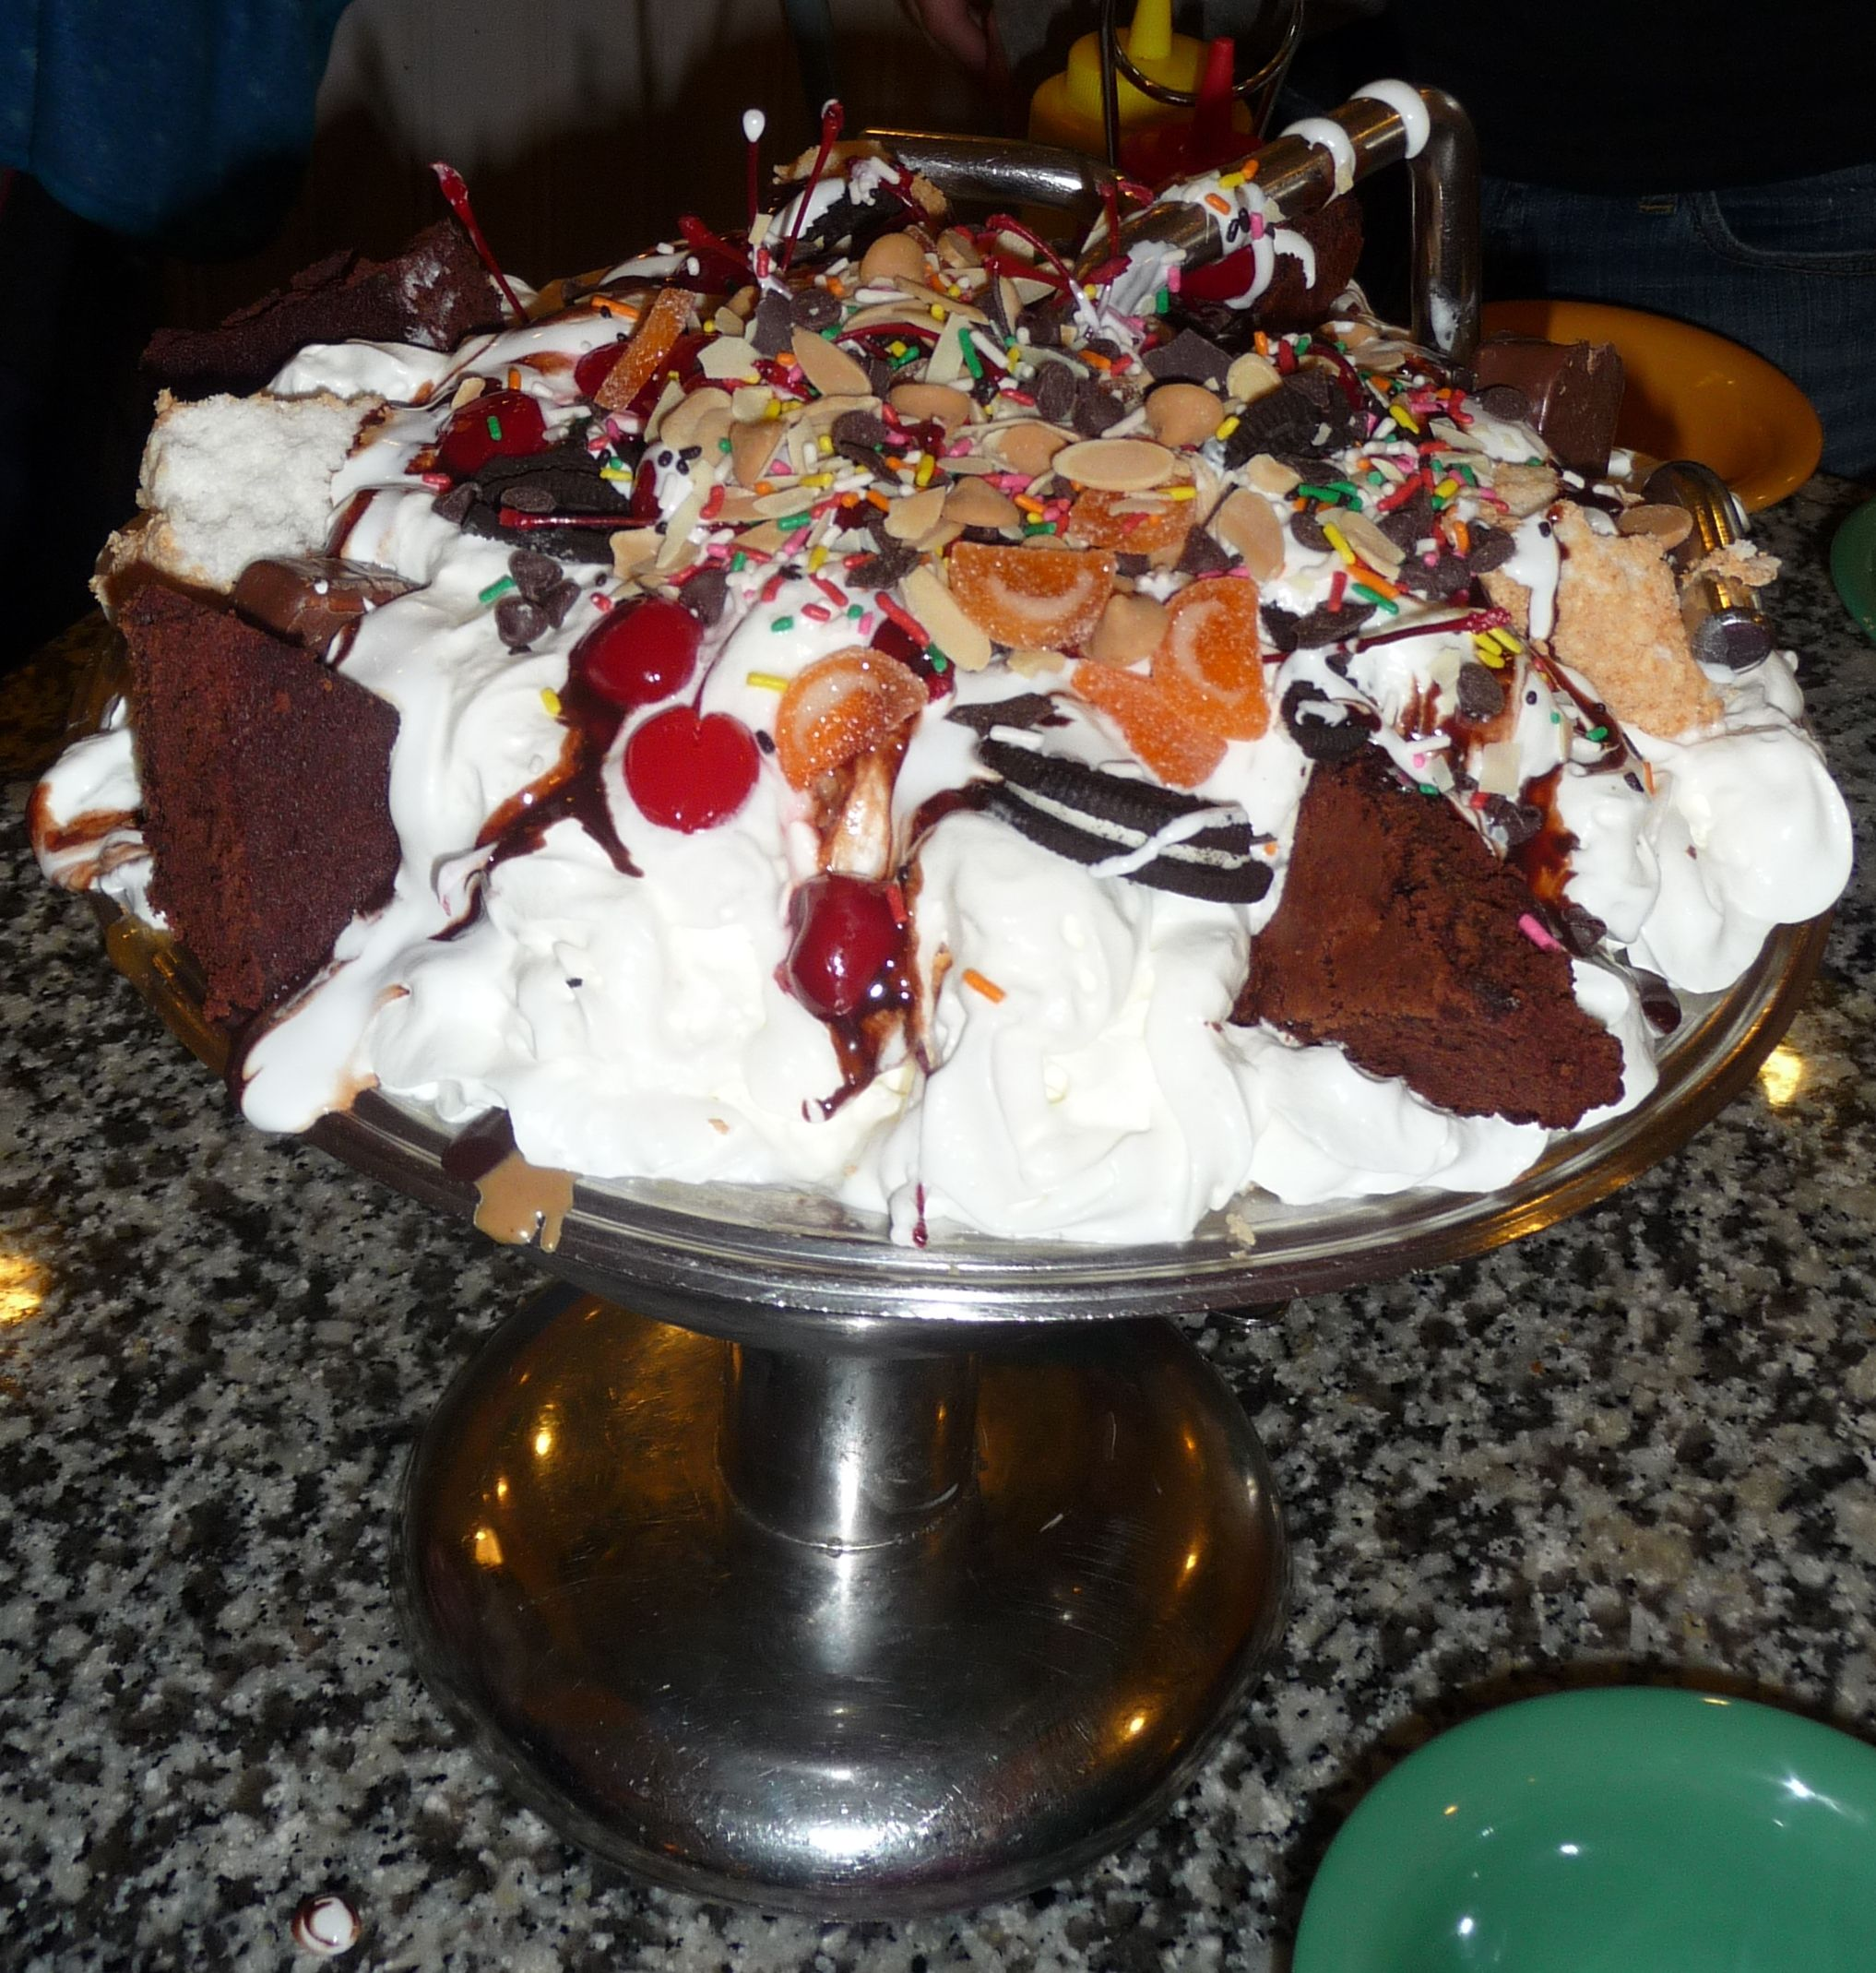 eat a kitchen sink ice cream sundae - beaches and cream - walt